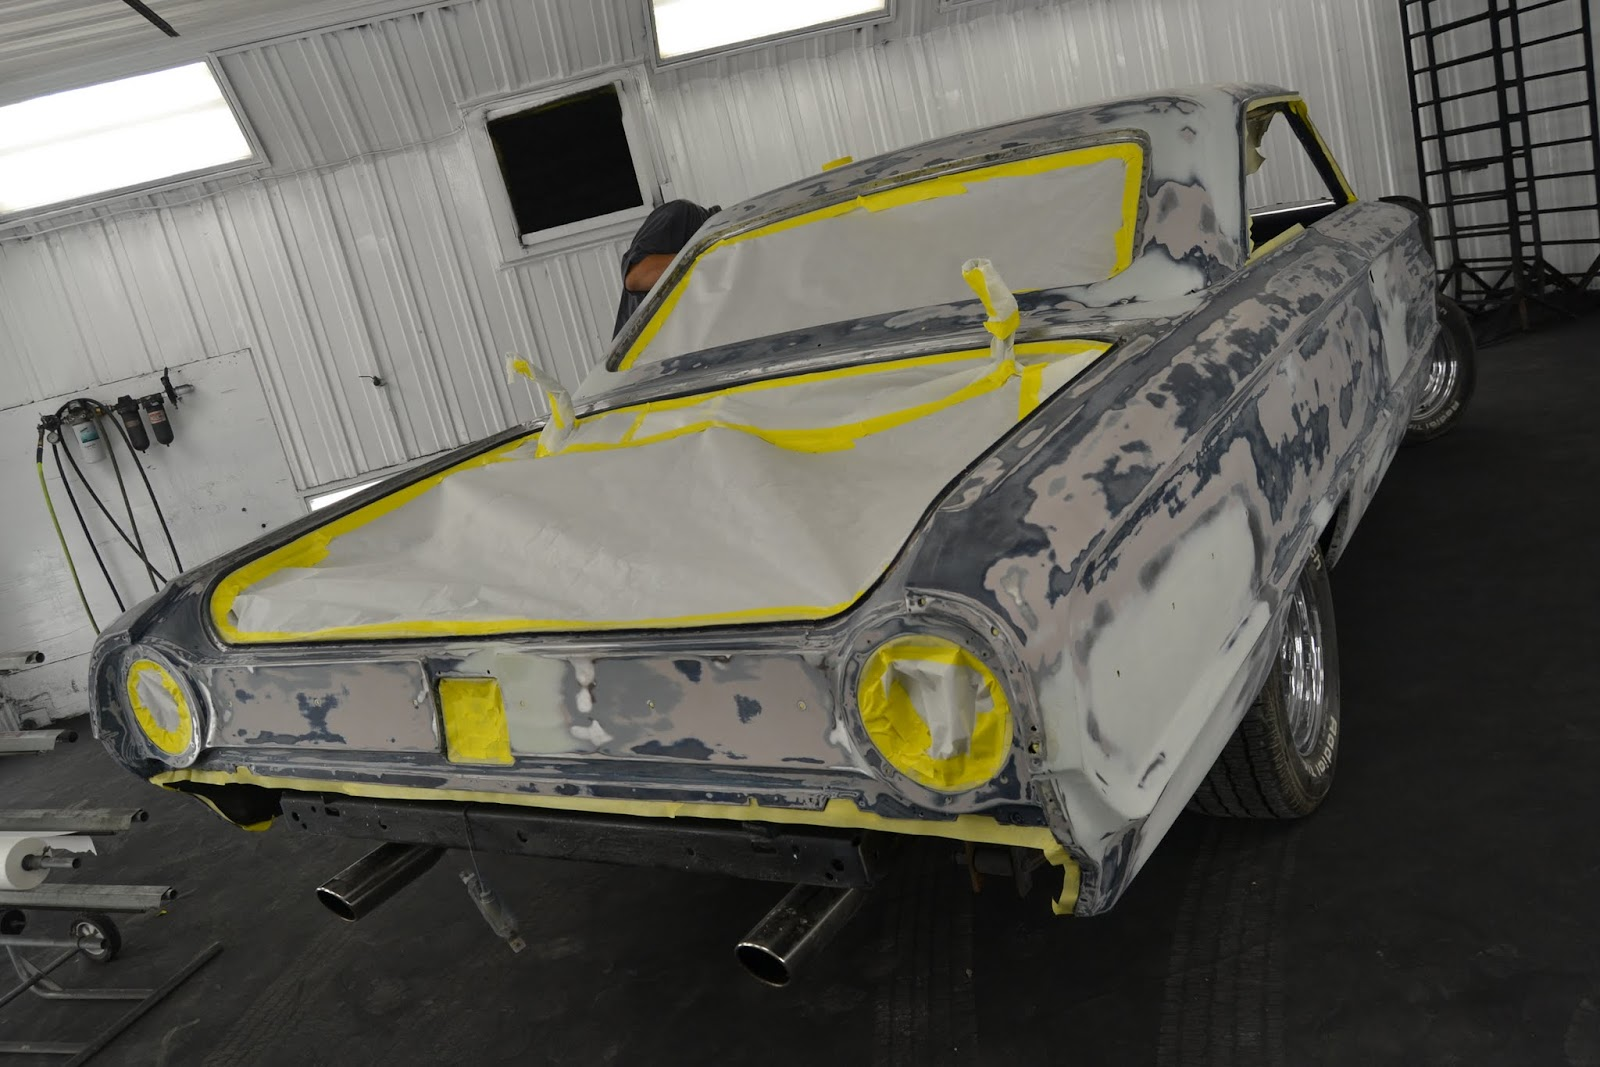 1964 Ford Galaxie 500 XL Upgrades & Repaint - Page 2 - V8 Forum - V8TV